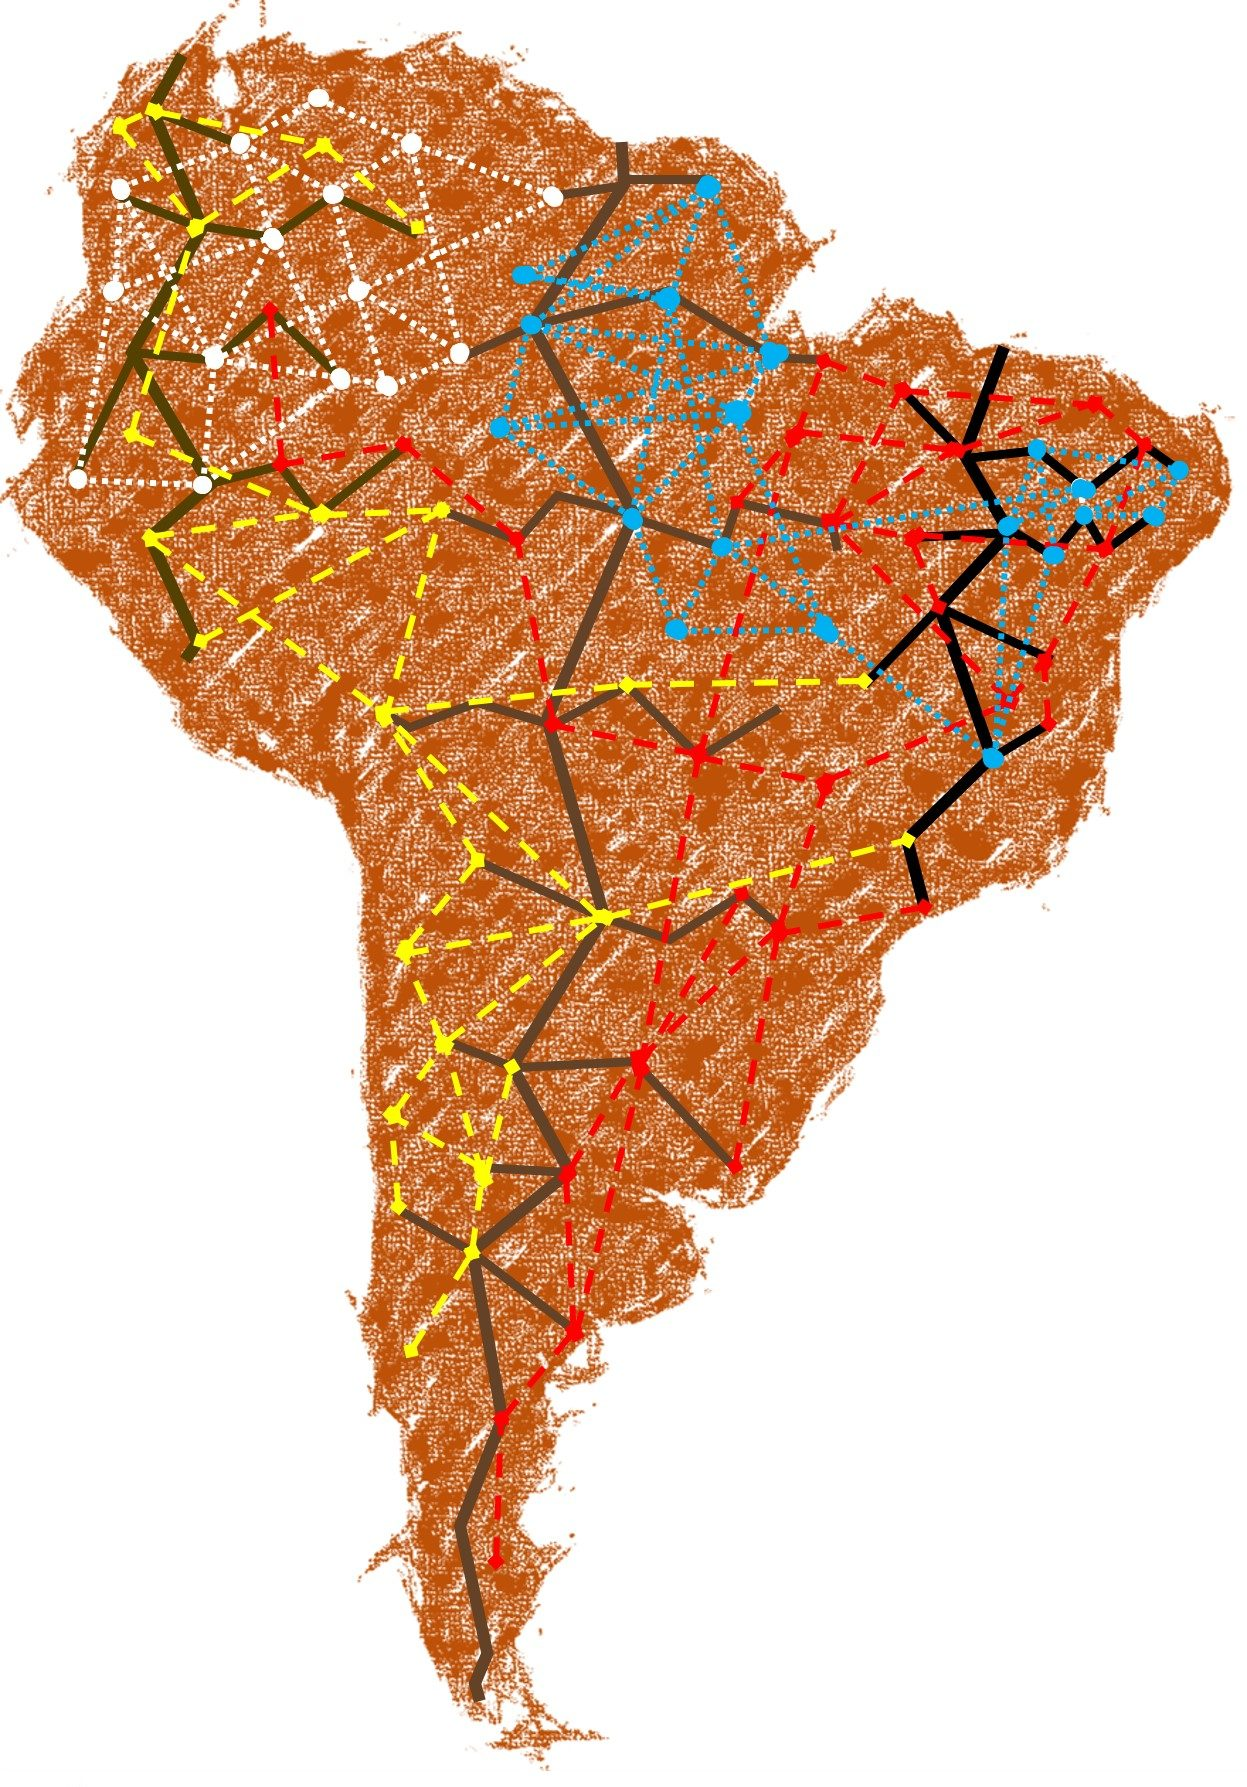 South American Mycorrhizal Research Network